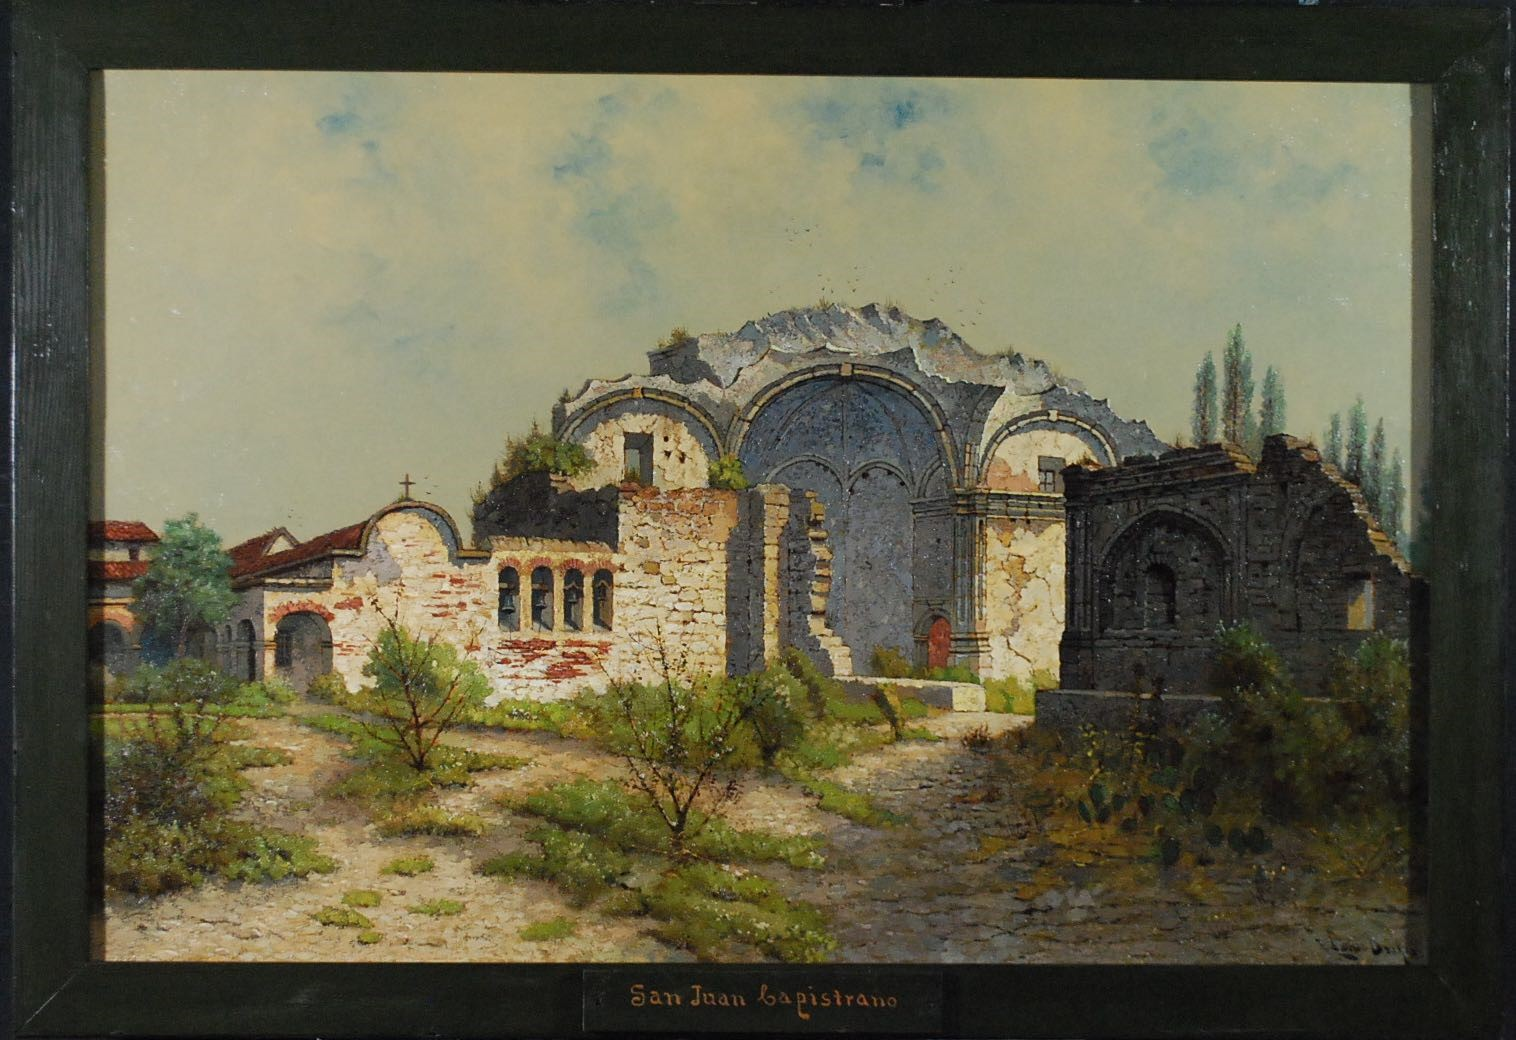 One of the paintings by Edwin Deakin. © Santa Barbara Mission Archives Library. Photos by Fine Art Conservation Laboratories